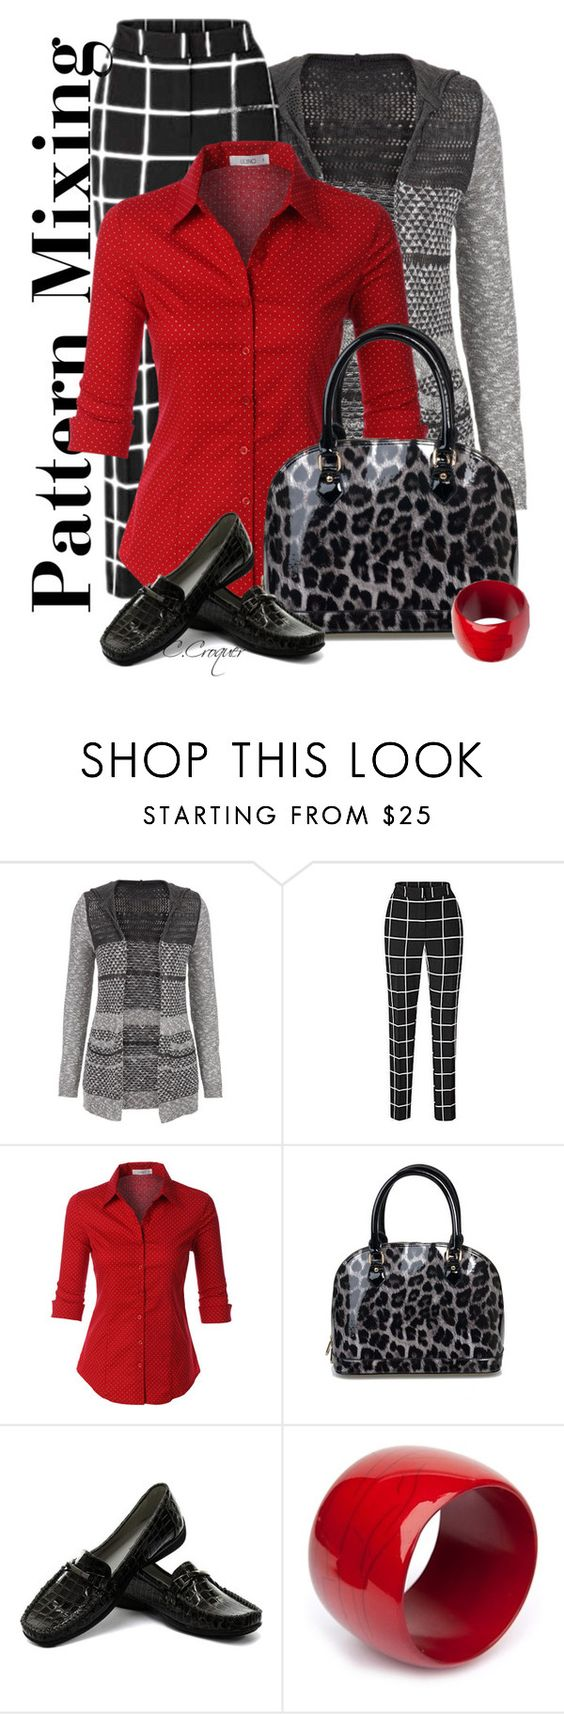 """Mixing!!"" by ccroquer ❤ liked on Polyvore featuring maurices, LE3NO, Trueform and R.J. Graziano"